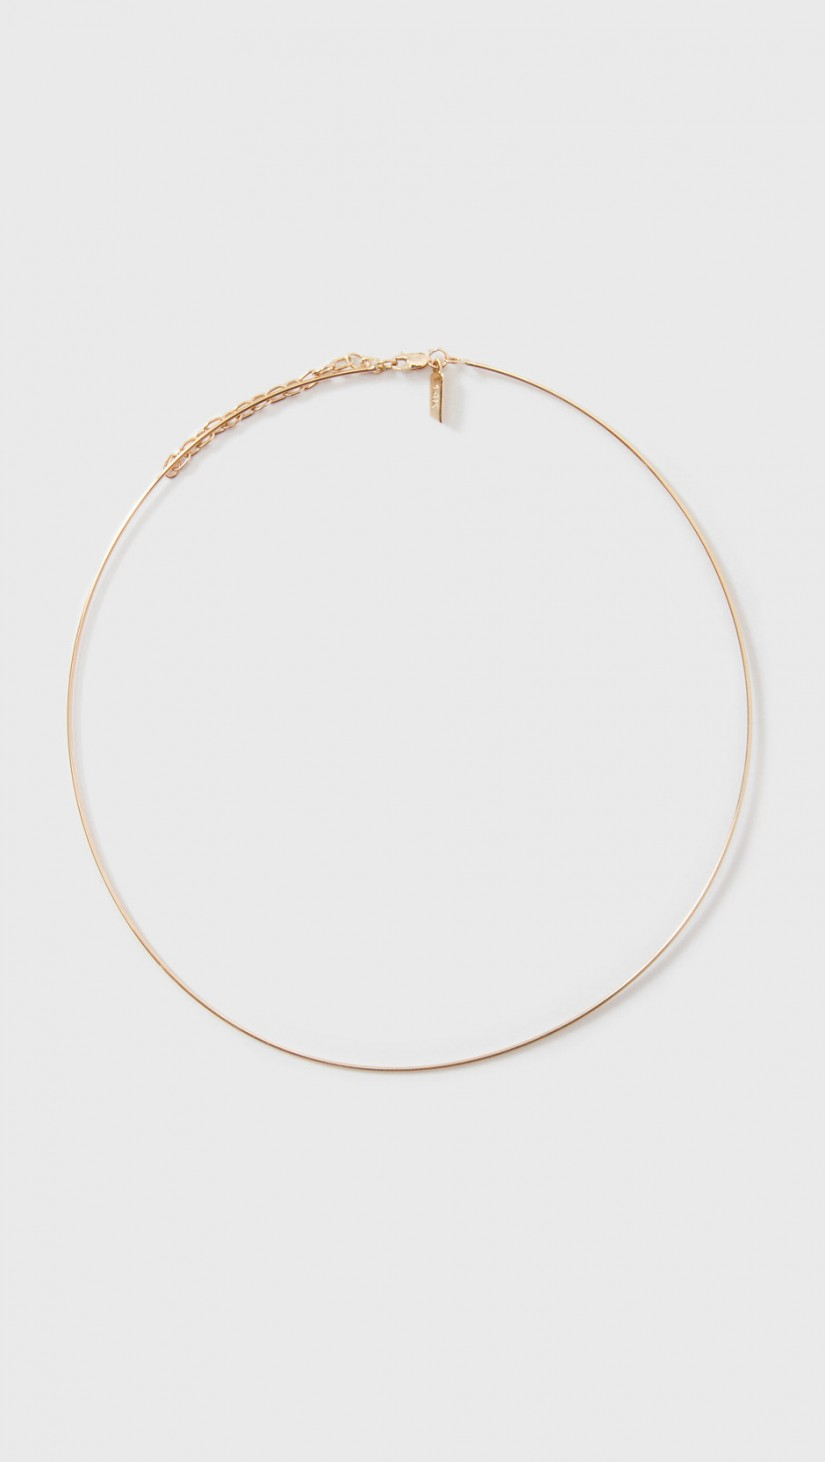 Edie Parker 14k Wire Choker Necklace z7OFkL